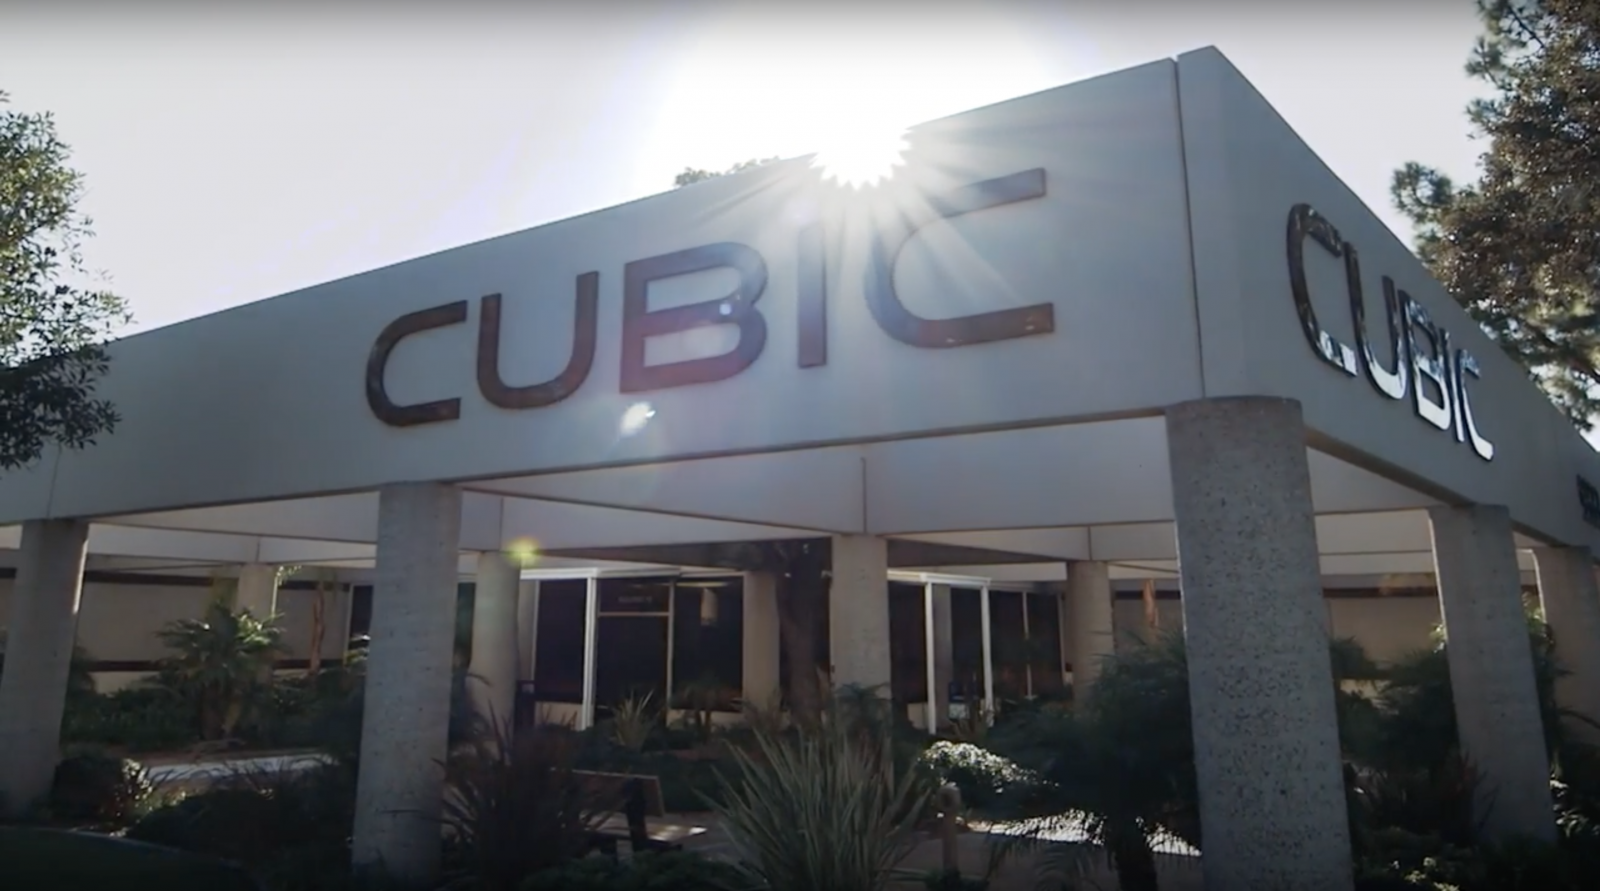 Cubic_Headquarters.png